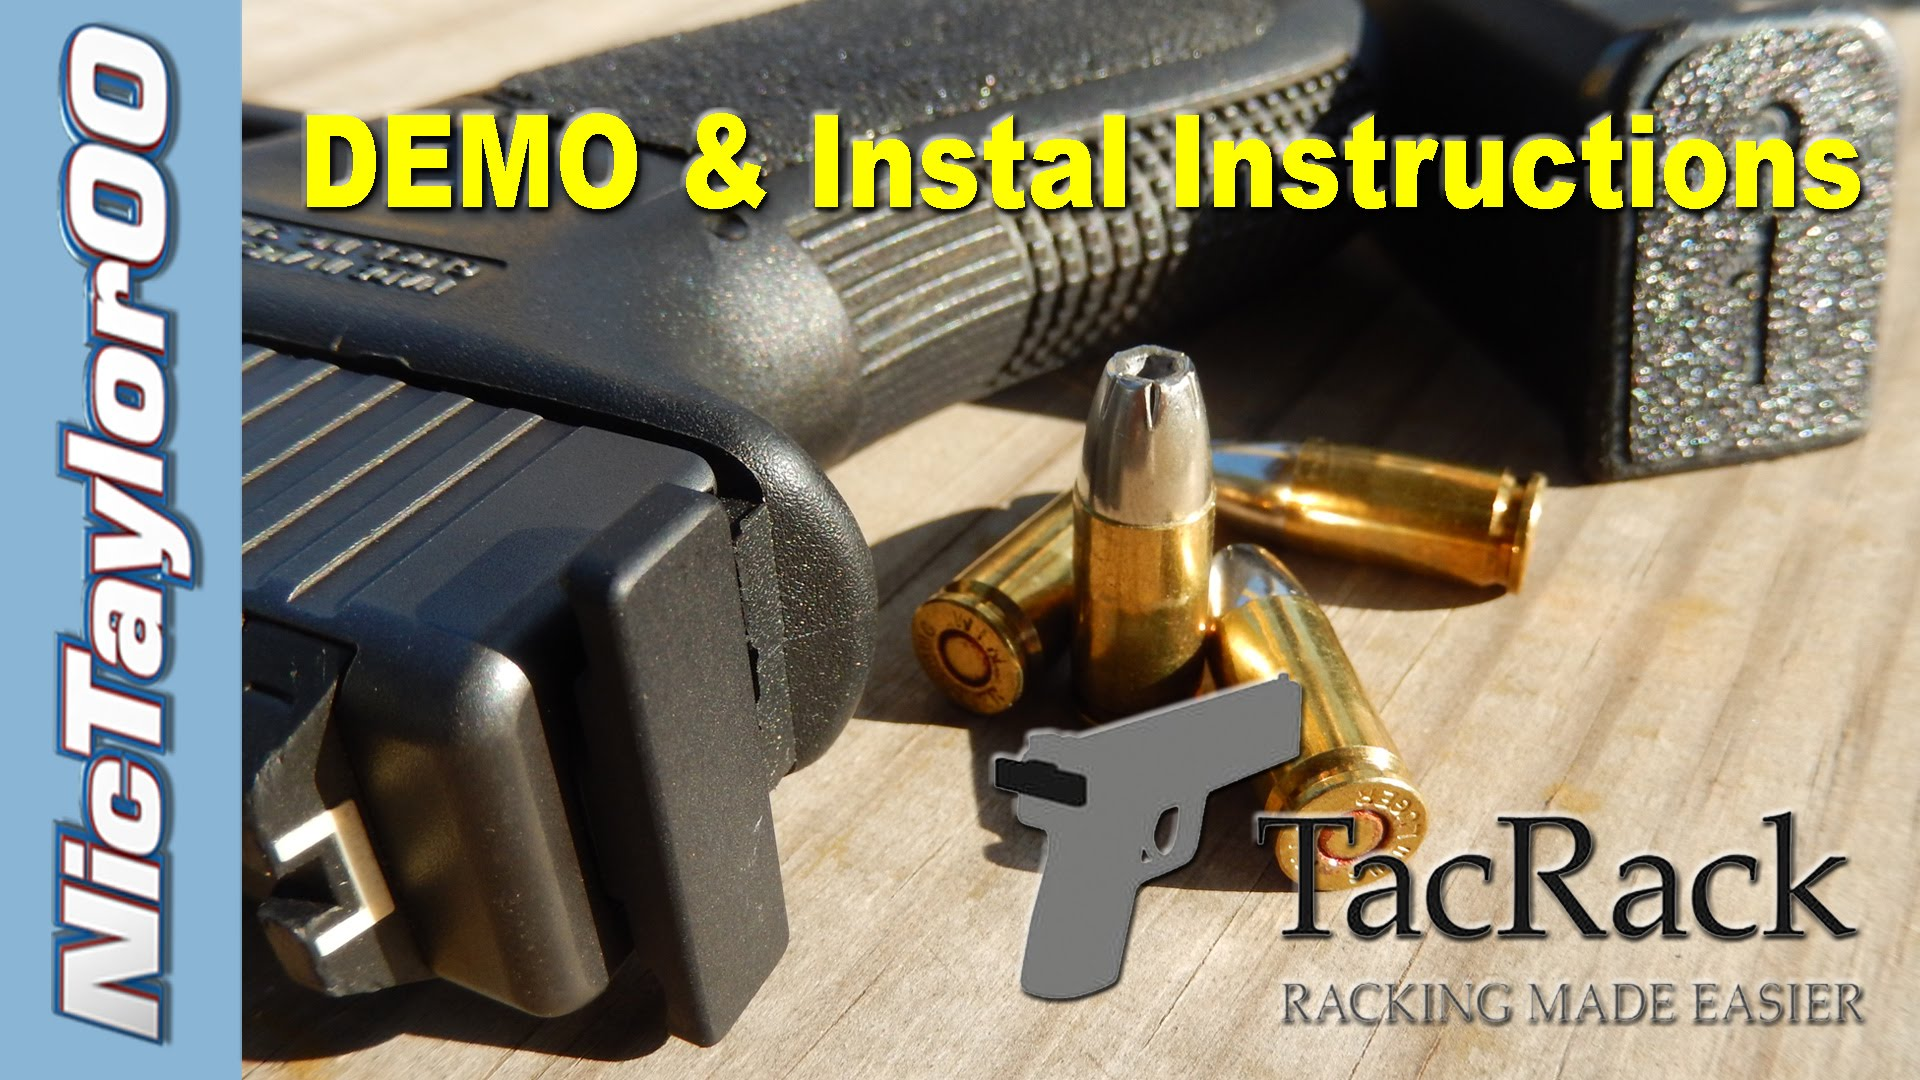 Glock TacRack DEMO & Install Instructions